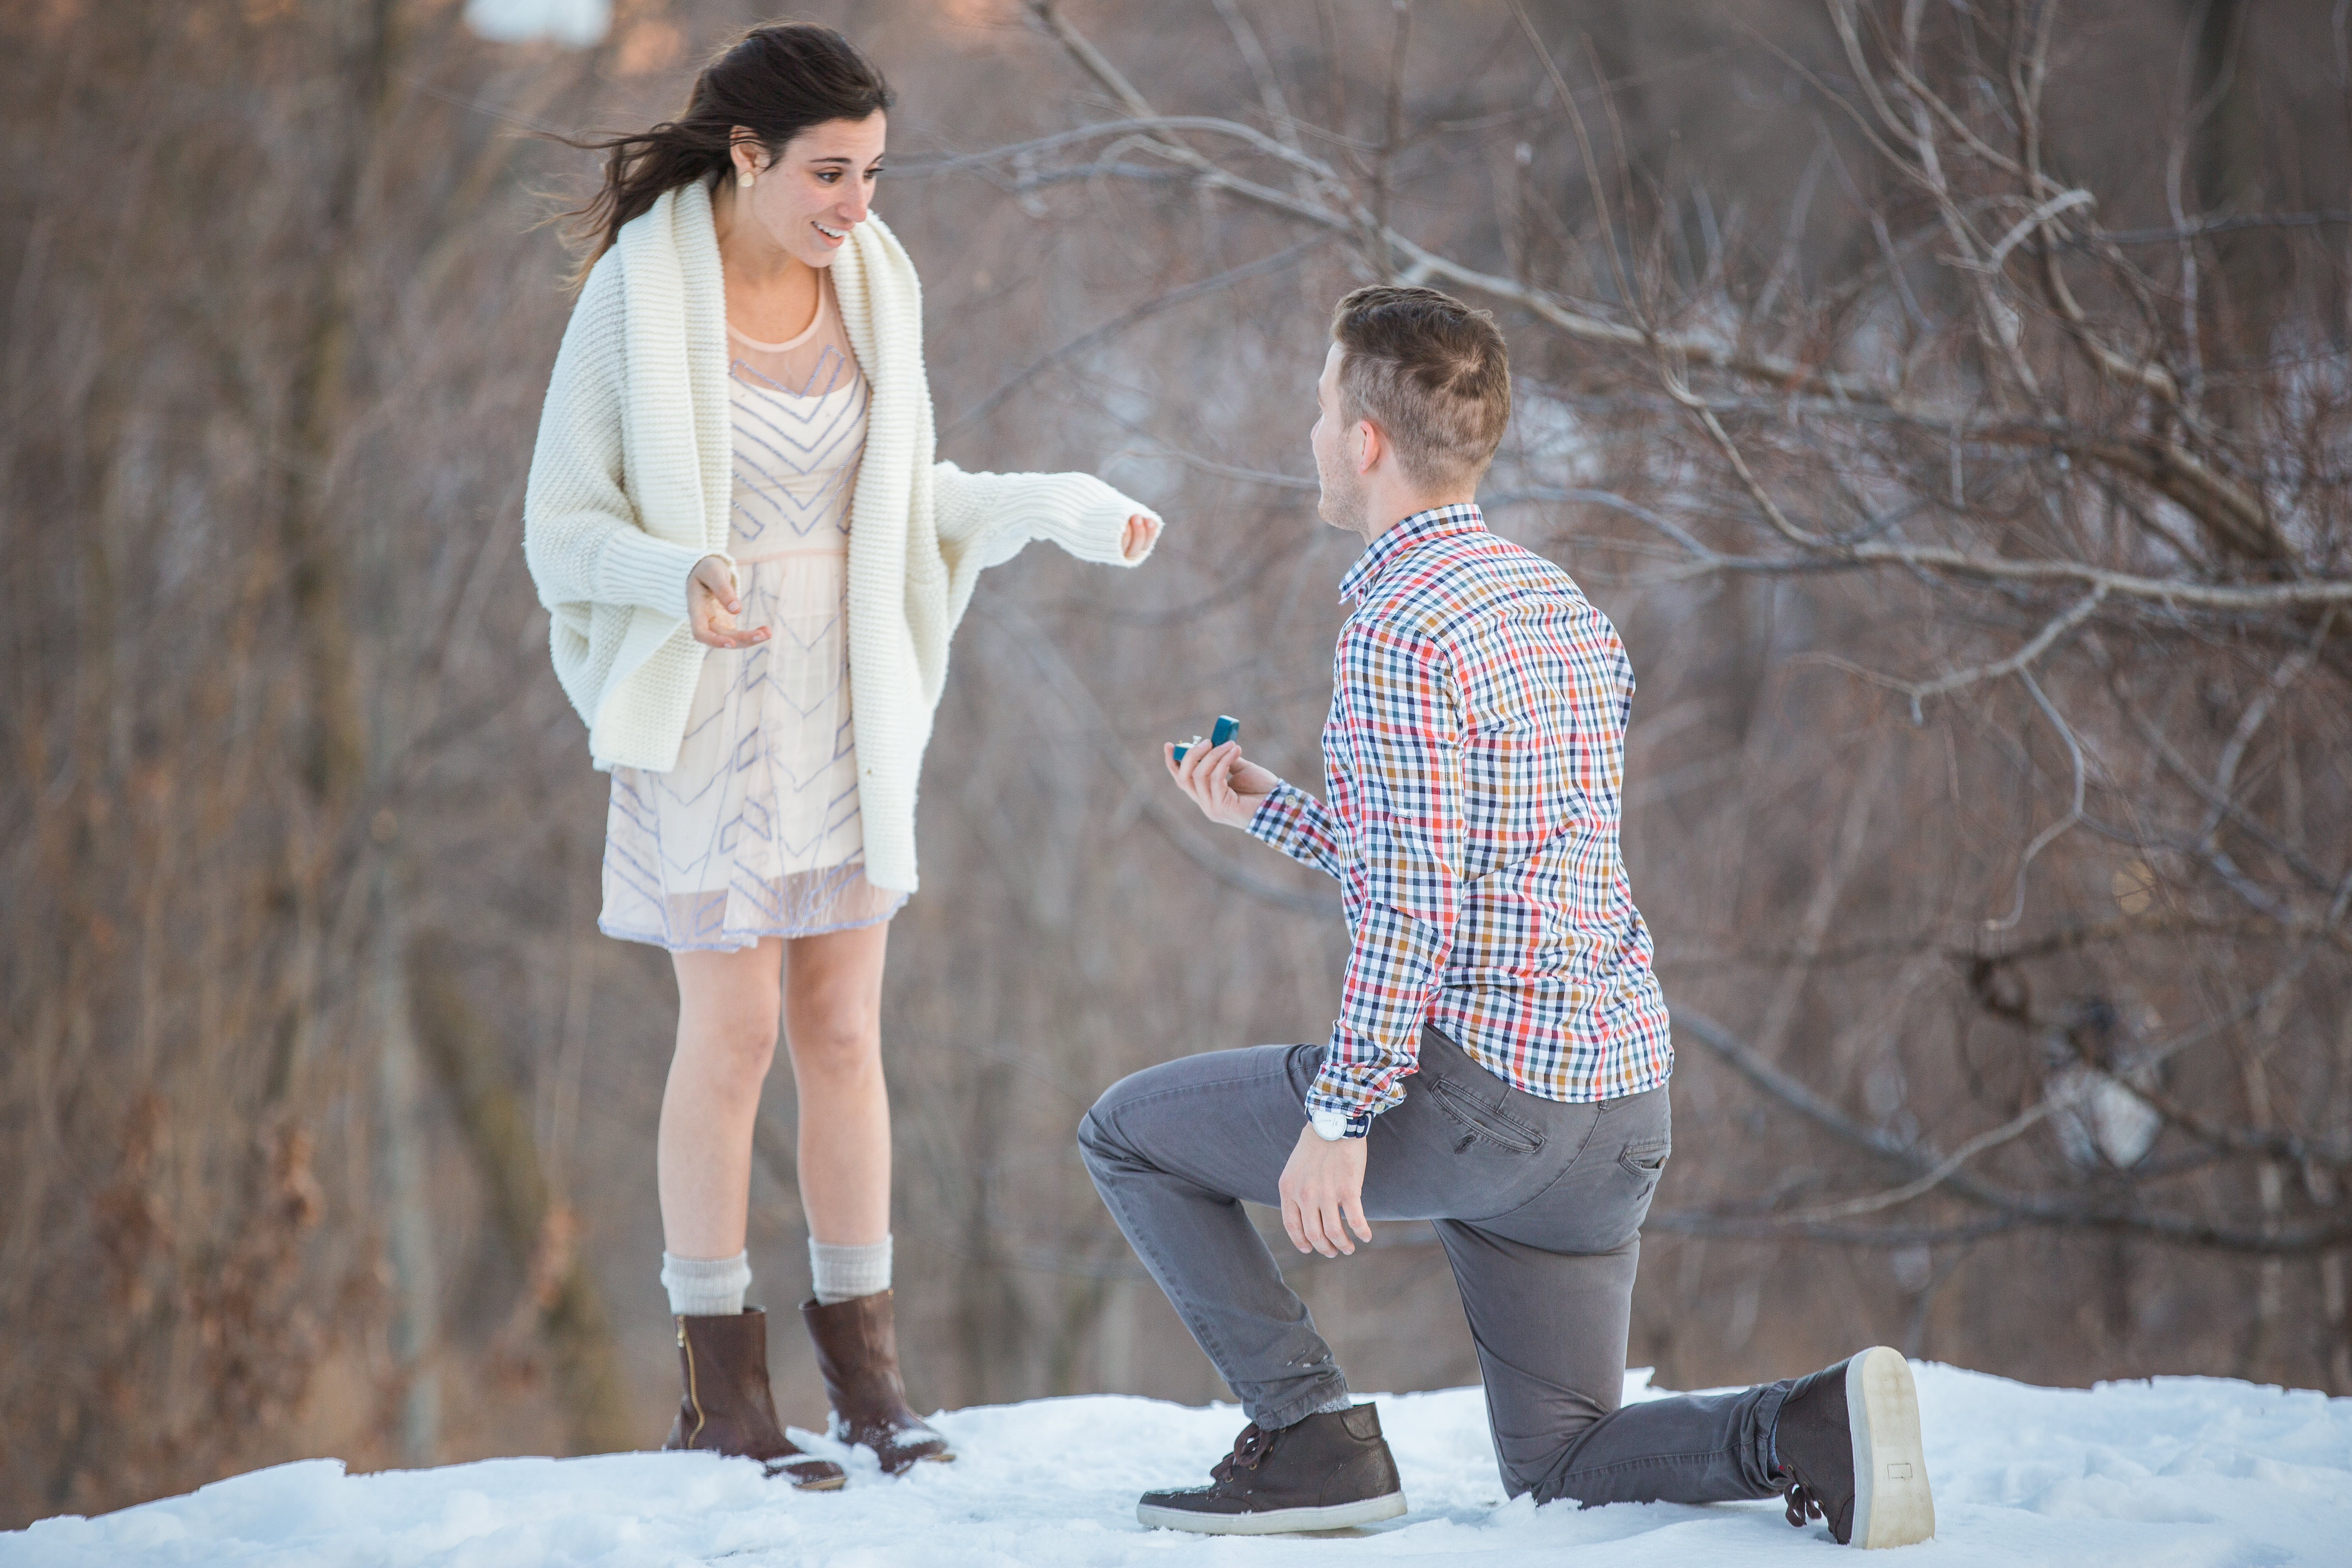 Photo 3 Surprise Proposal in Central Park near West 100th street | VladLeto